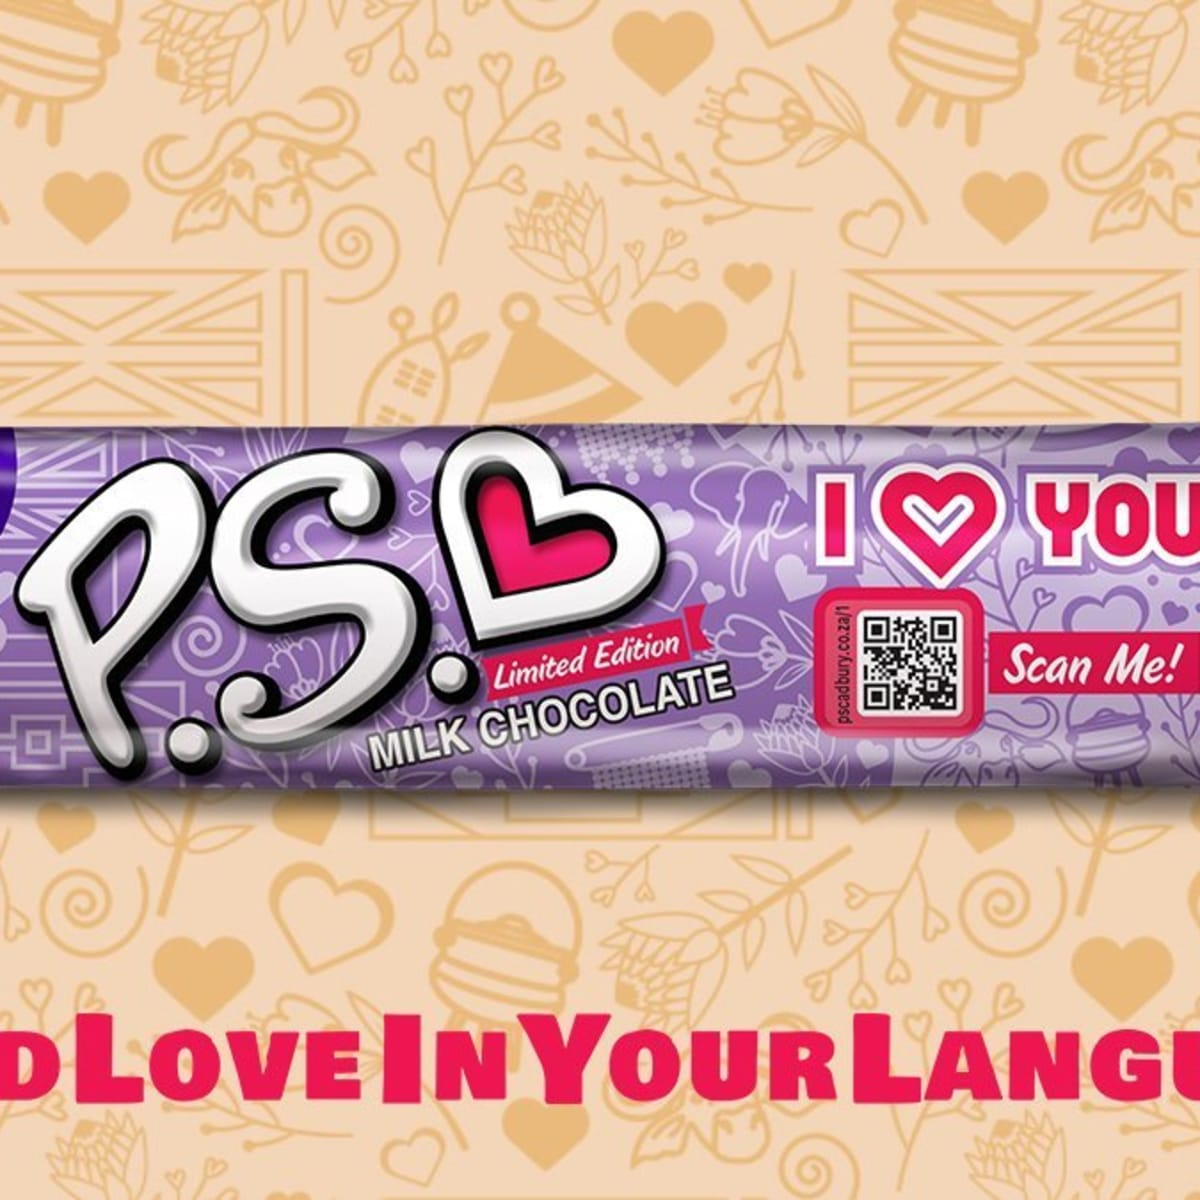 Cadbury P S LIMITED edition I Love You bars in the different South African languages